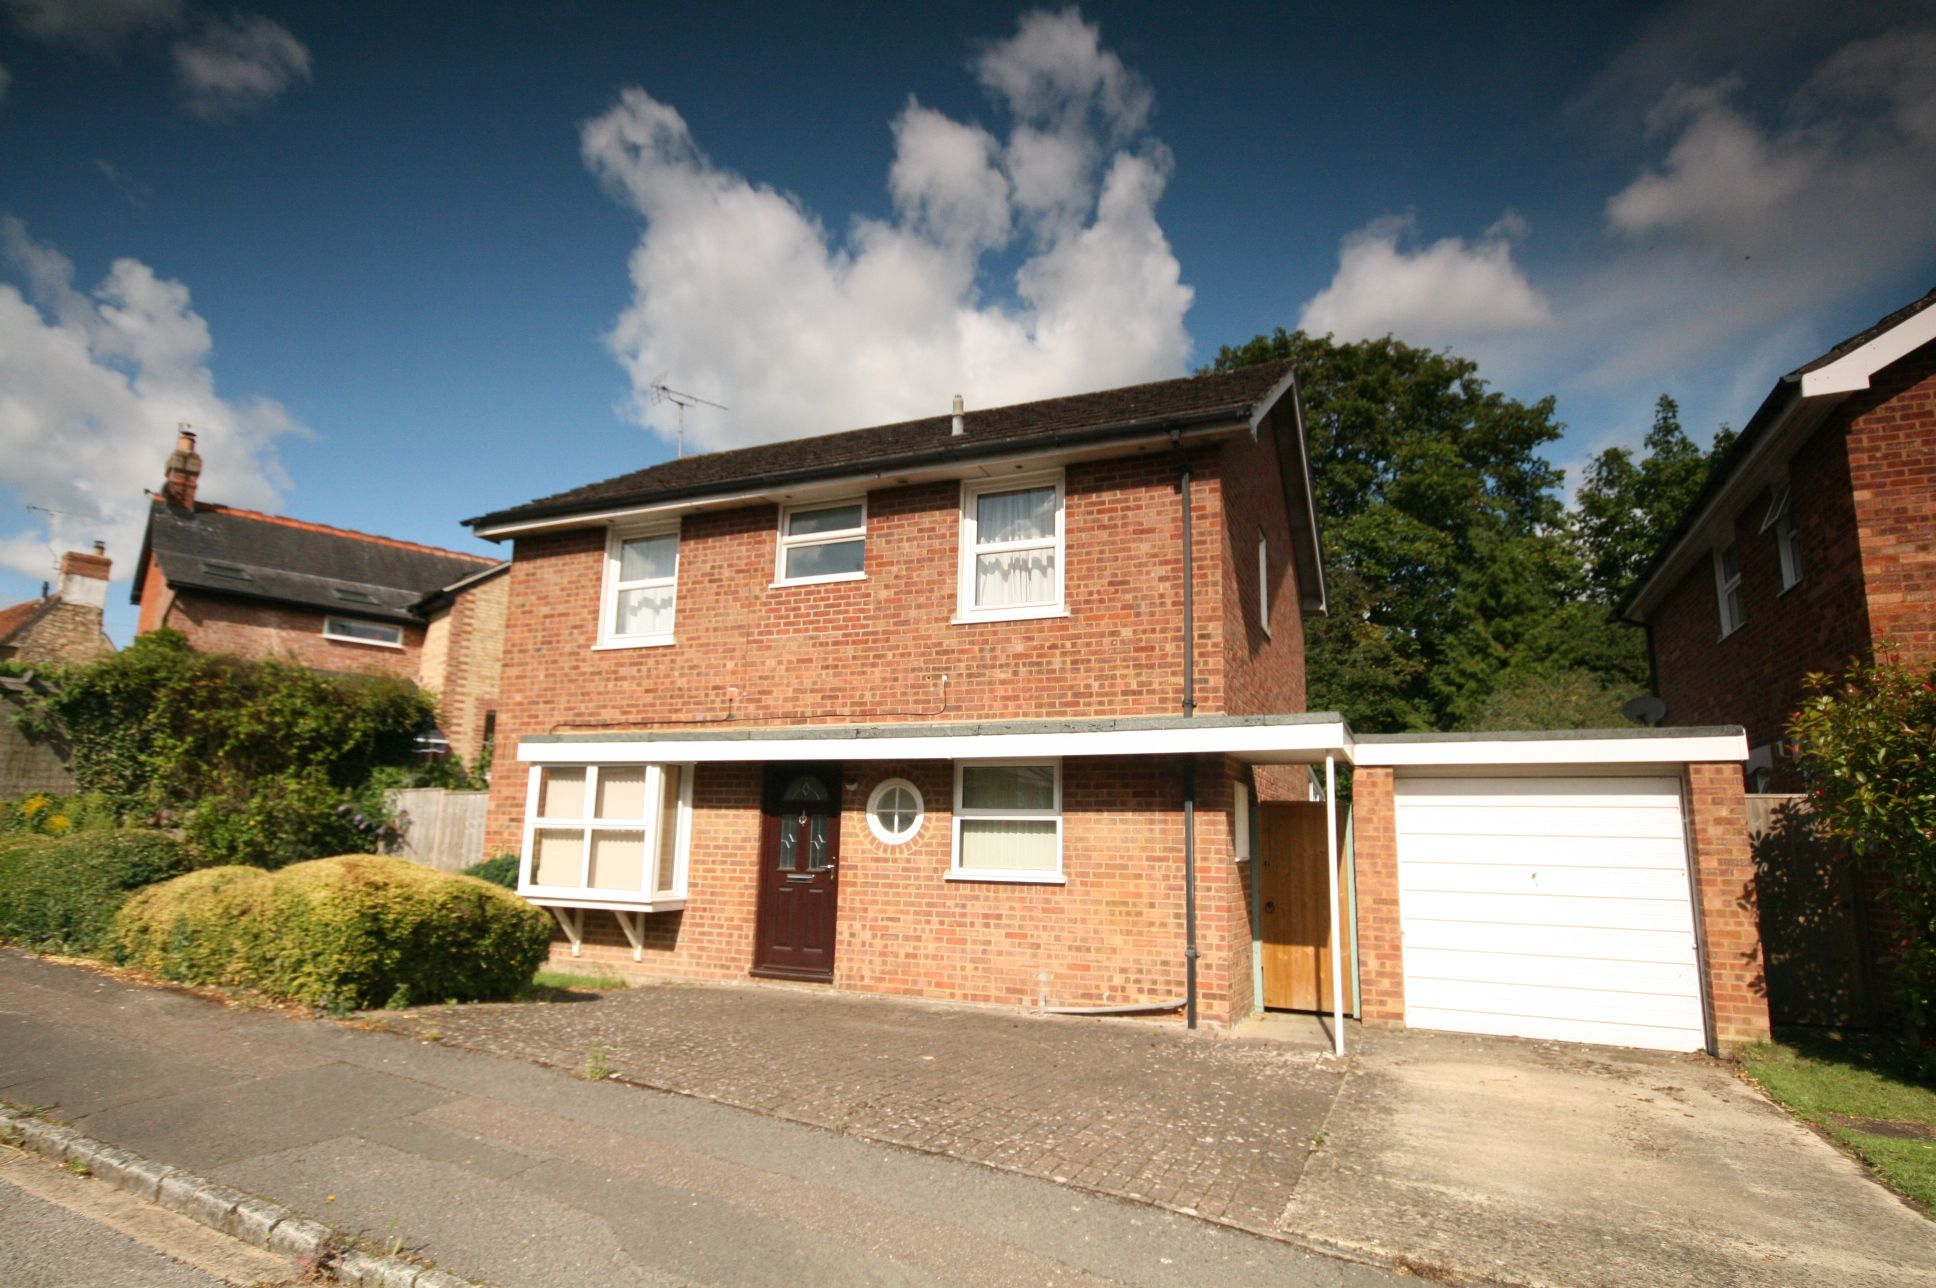 4 Bedroom Detached House For Sale - Photograph 1